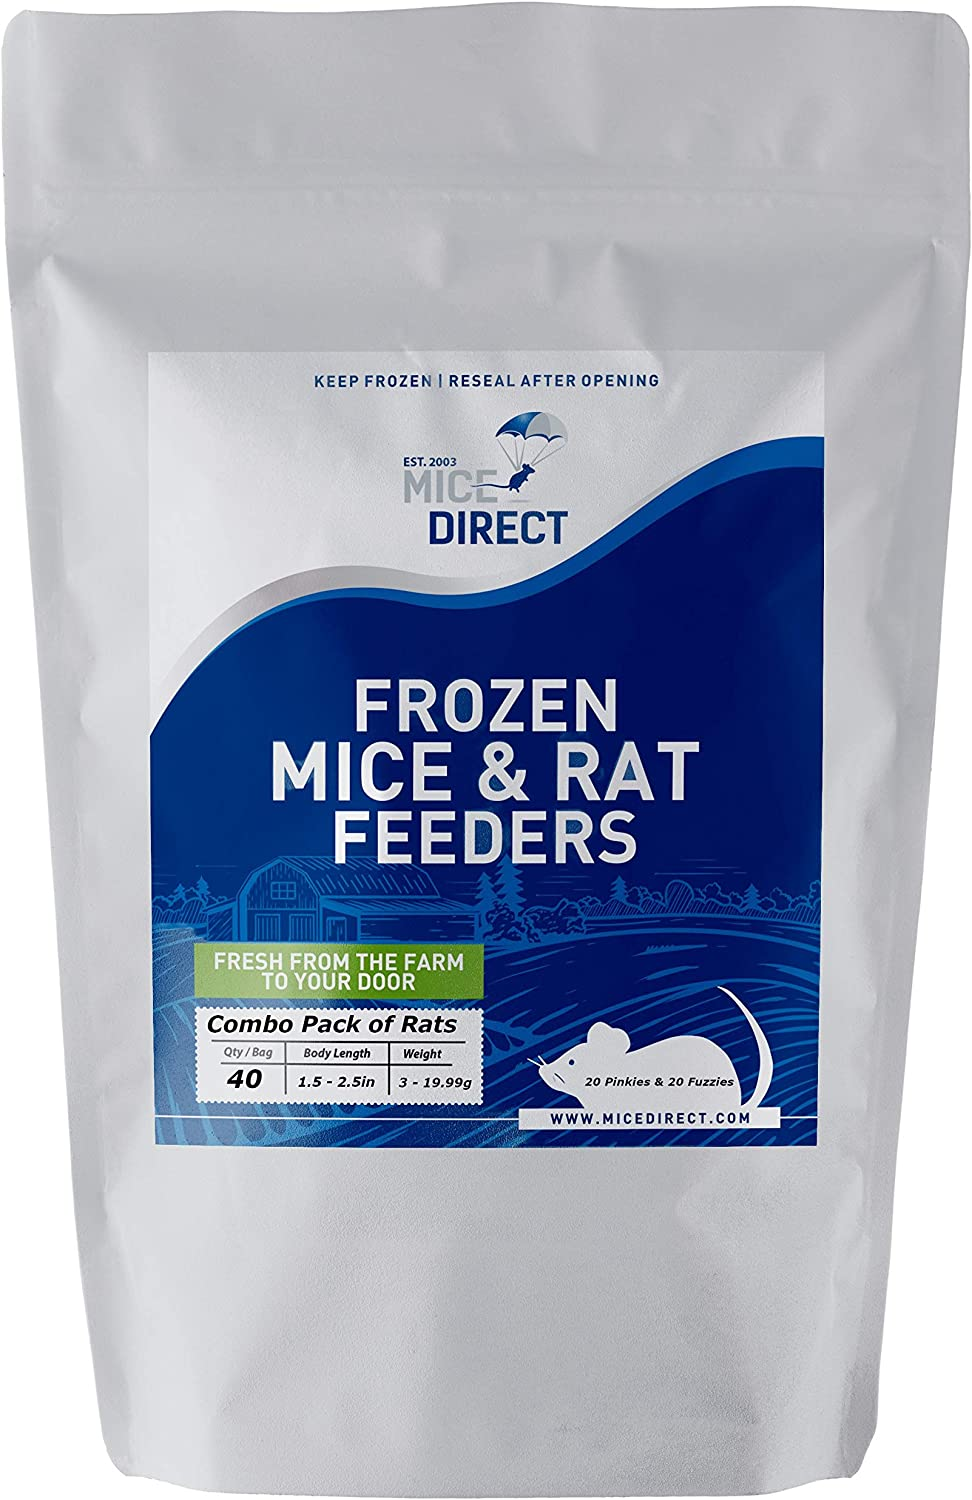 MiceDirect Frozen Rat Combo Pack of 40 Pinky & Fuzzie Feeder Rats - 20 Rat Pinkies & 20 Rat Fuzzies - Food for Corn Snakes, Ball Pythons, Lizards and Other Pet Reptiles-Freshest Snake Feed Supplies